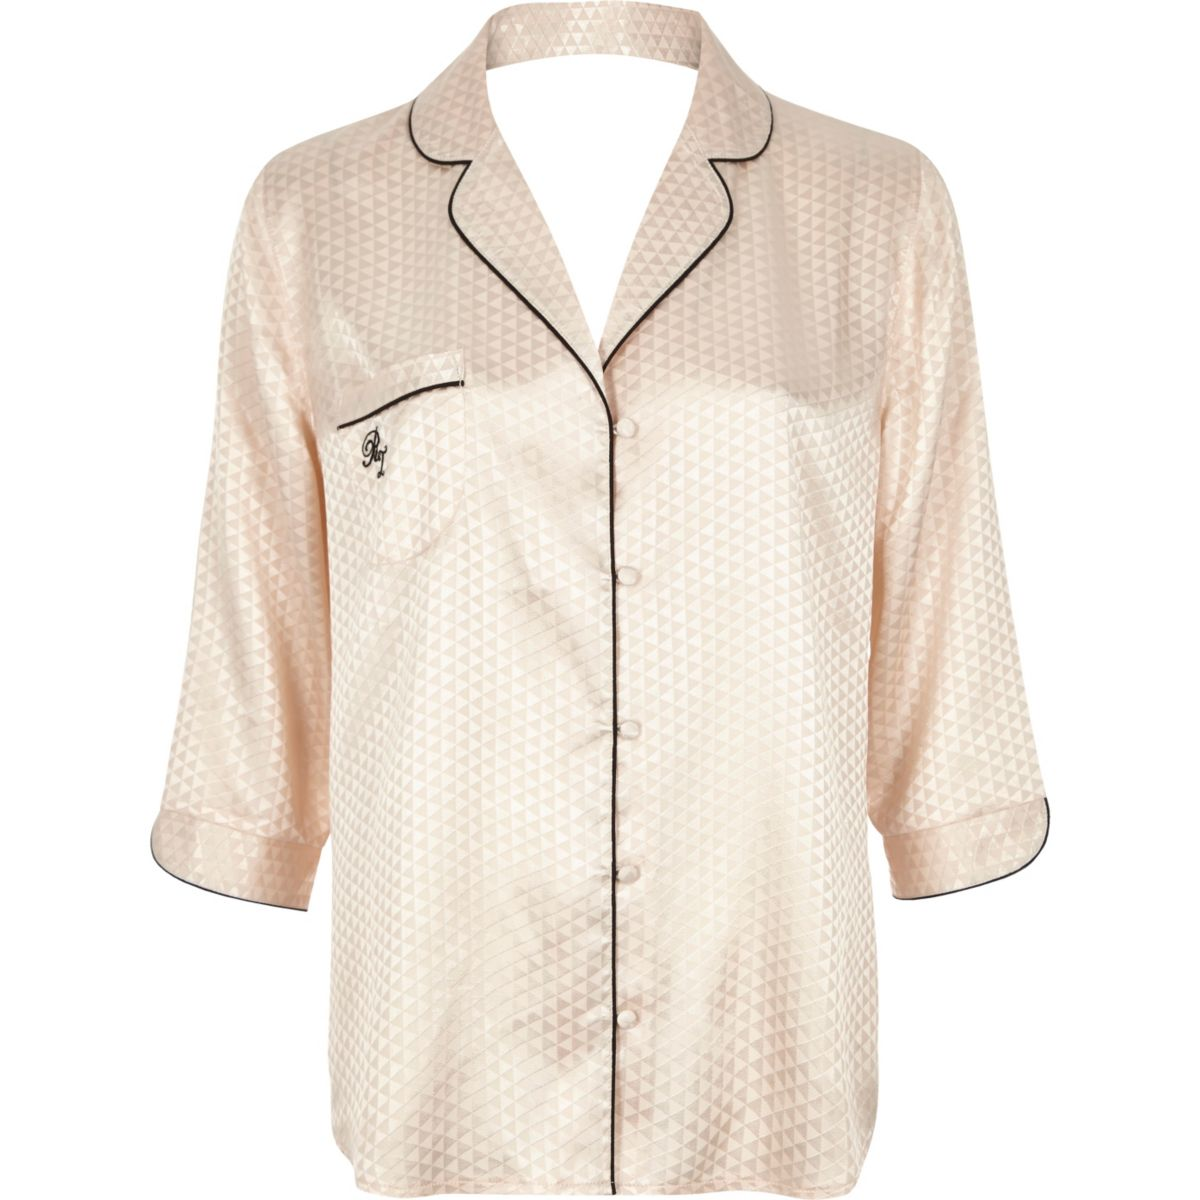 Cream jacquard pyjama shirt